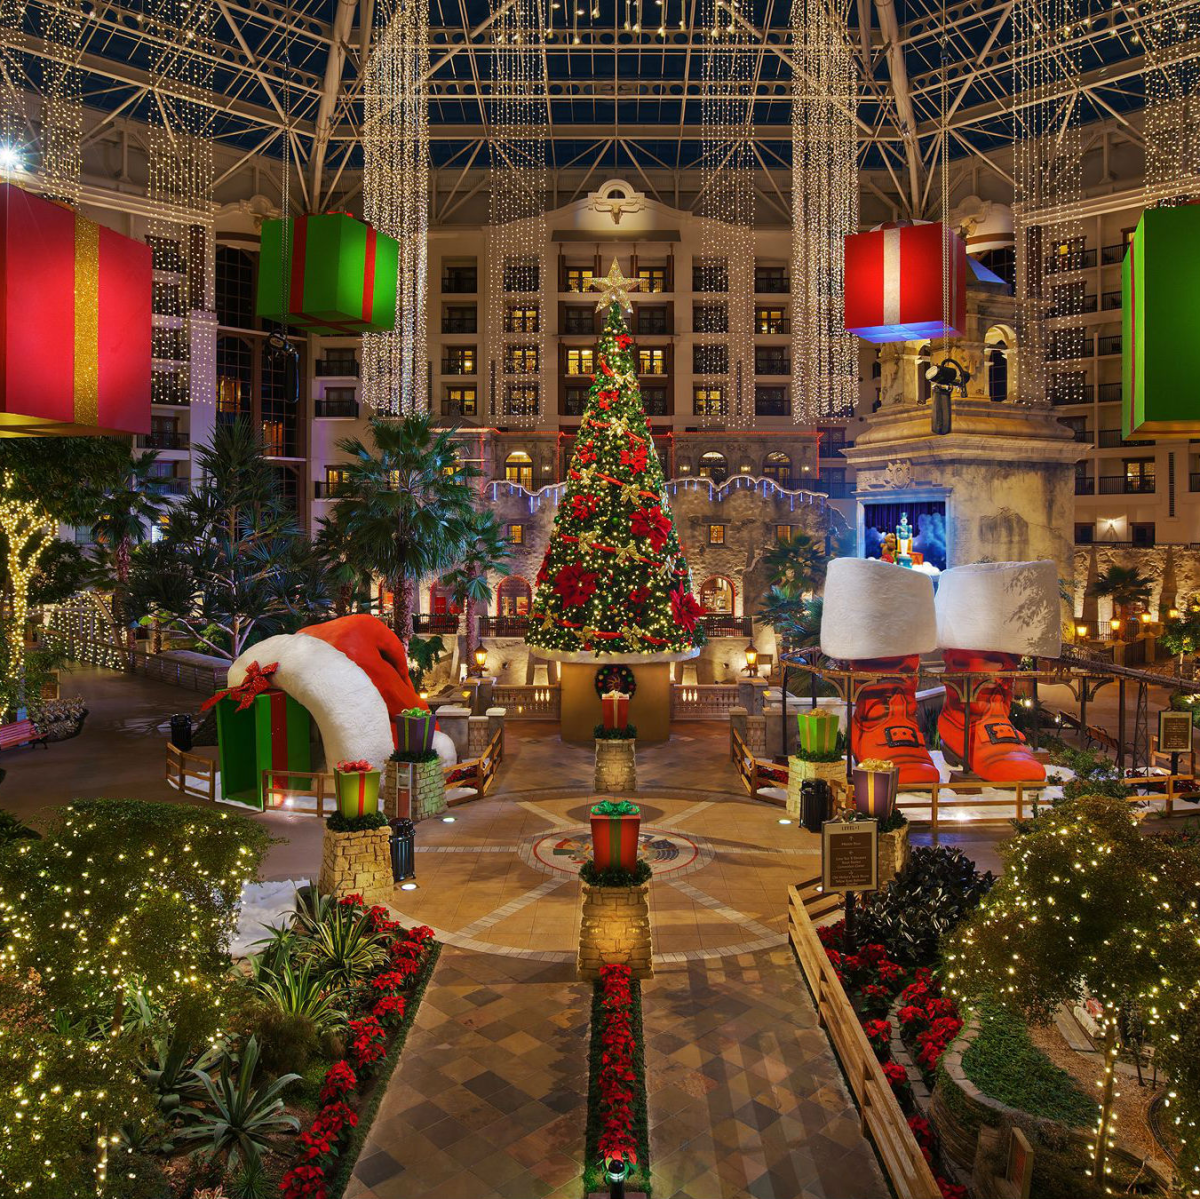 The 6 best Texas hotels for a festive holiday getaway - CultureMap